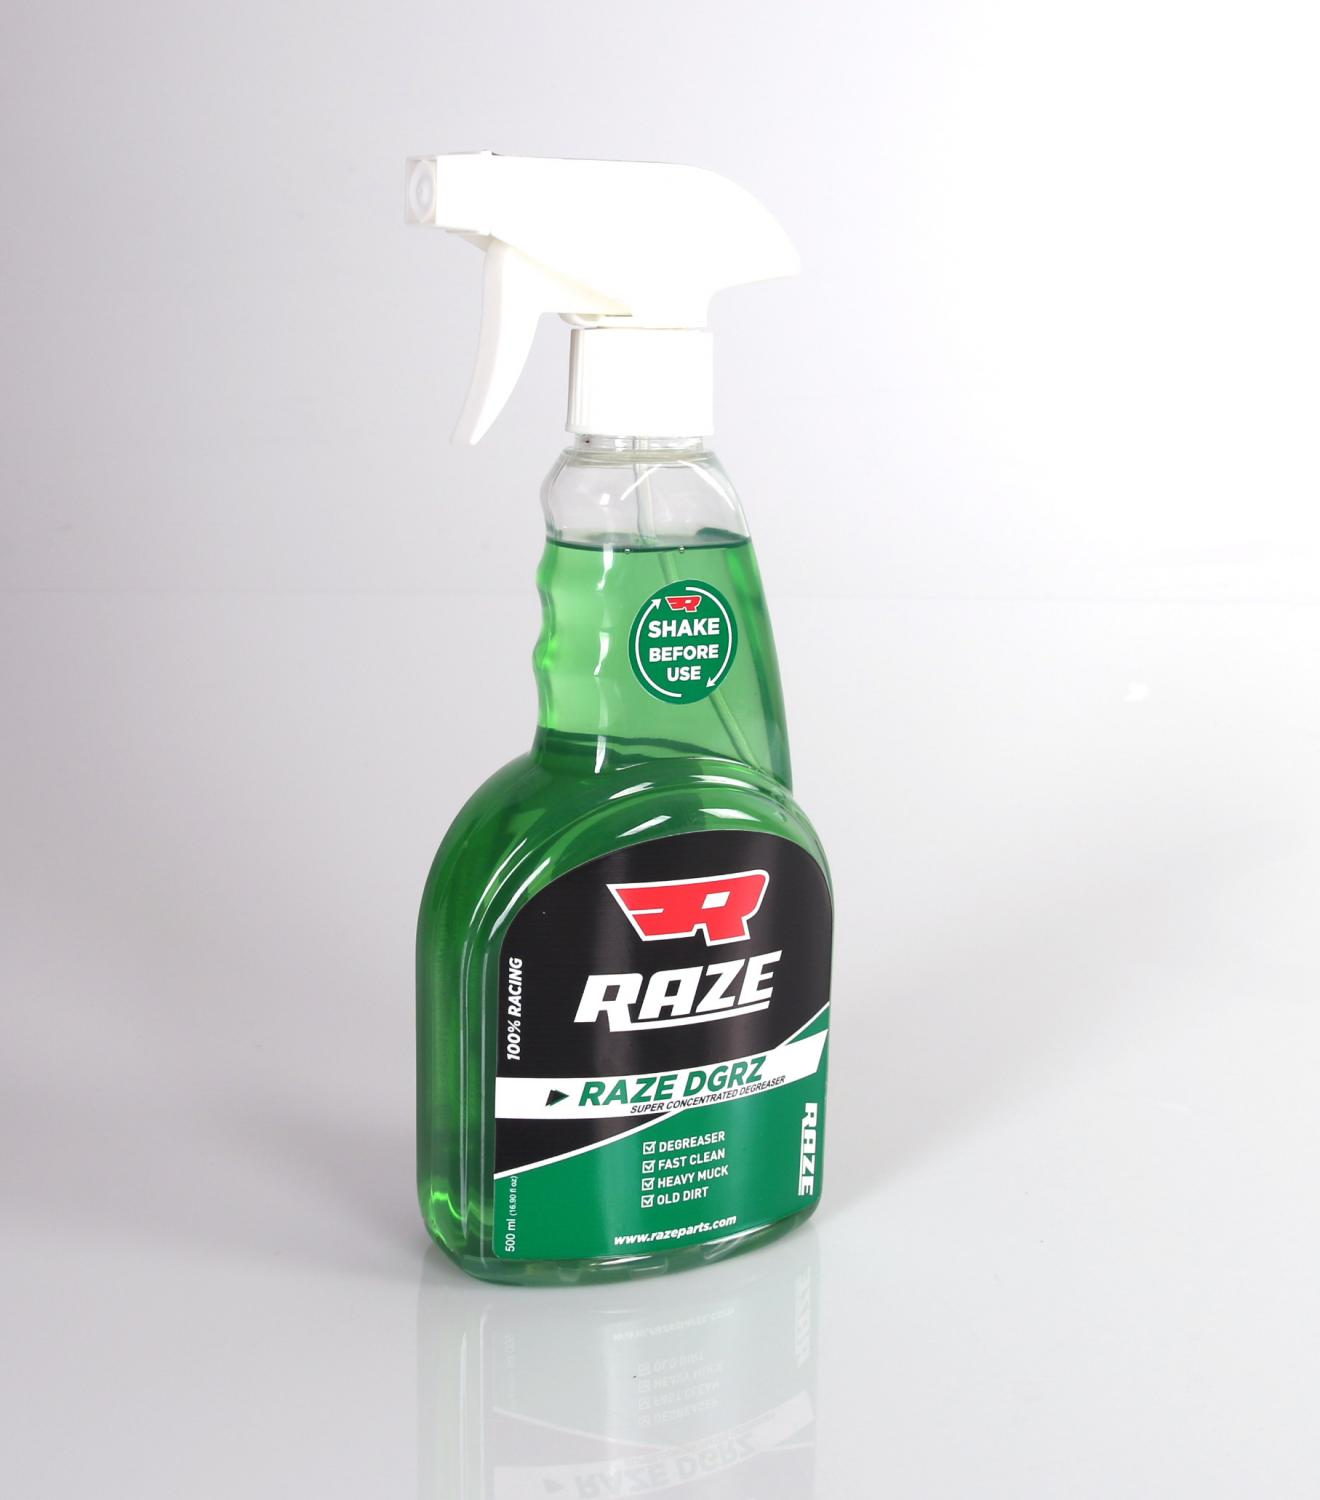 Razeclean Super Concentrad Degreaser DGRZ 500 ml